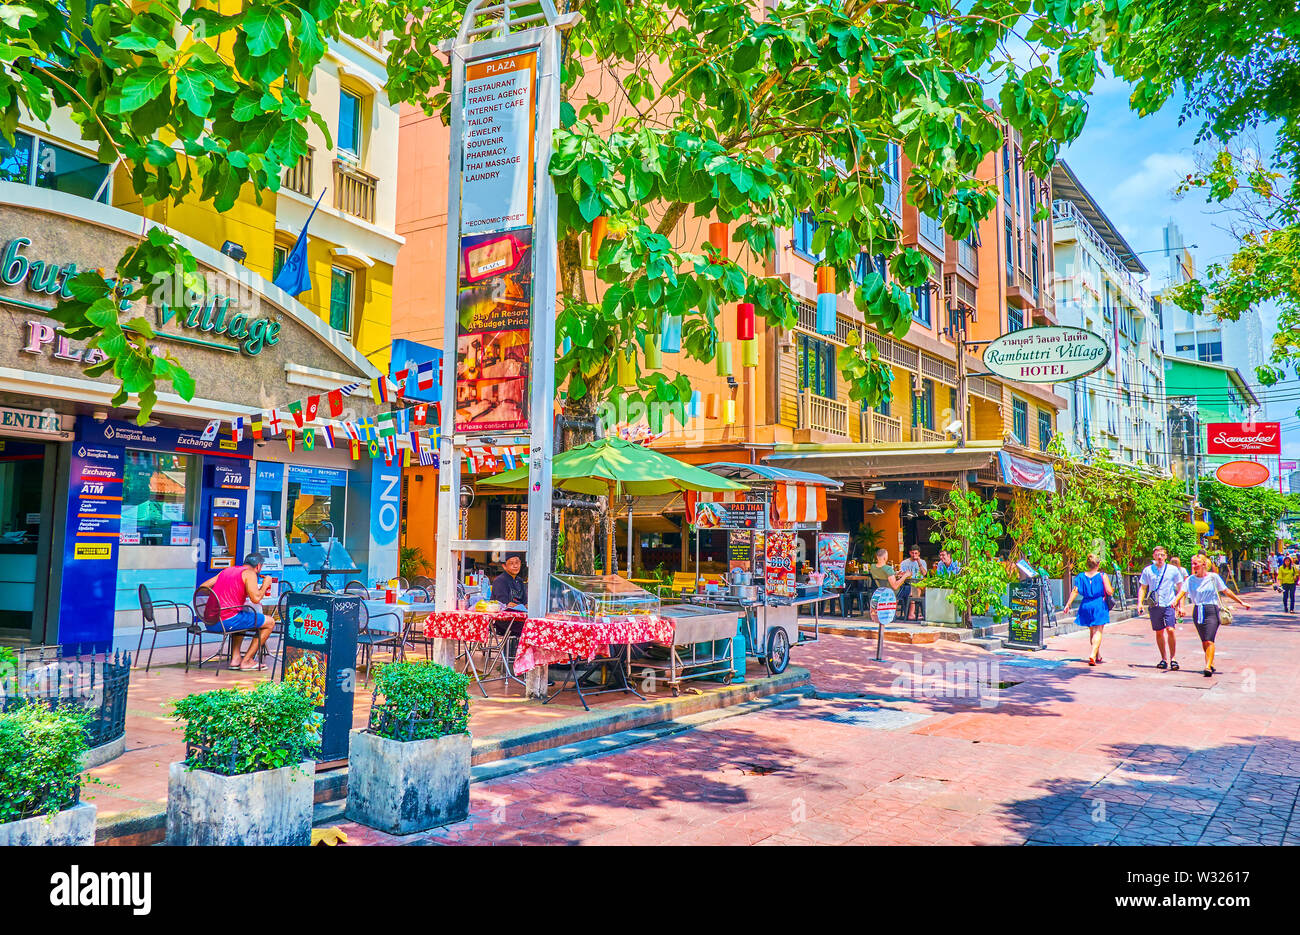 BANGKOK, THAILAND - APRIL 22, 2019: The popular Ram Buttri street is almost empty during hot sunny days and revives after dusk, on April 22 in Bangkok - Stock Image